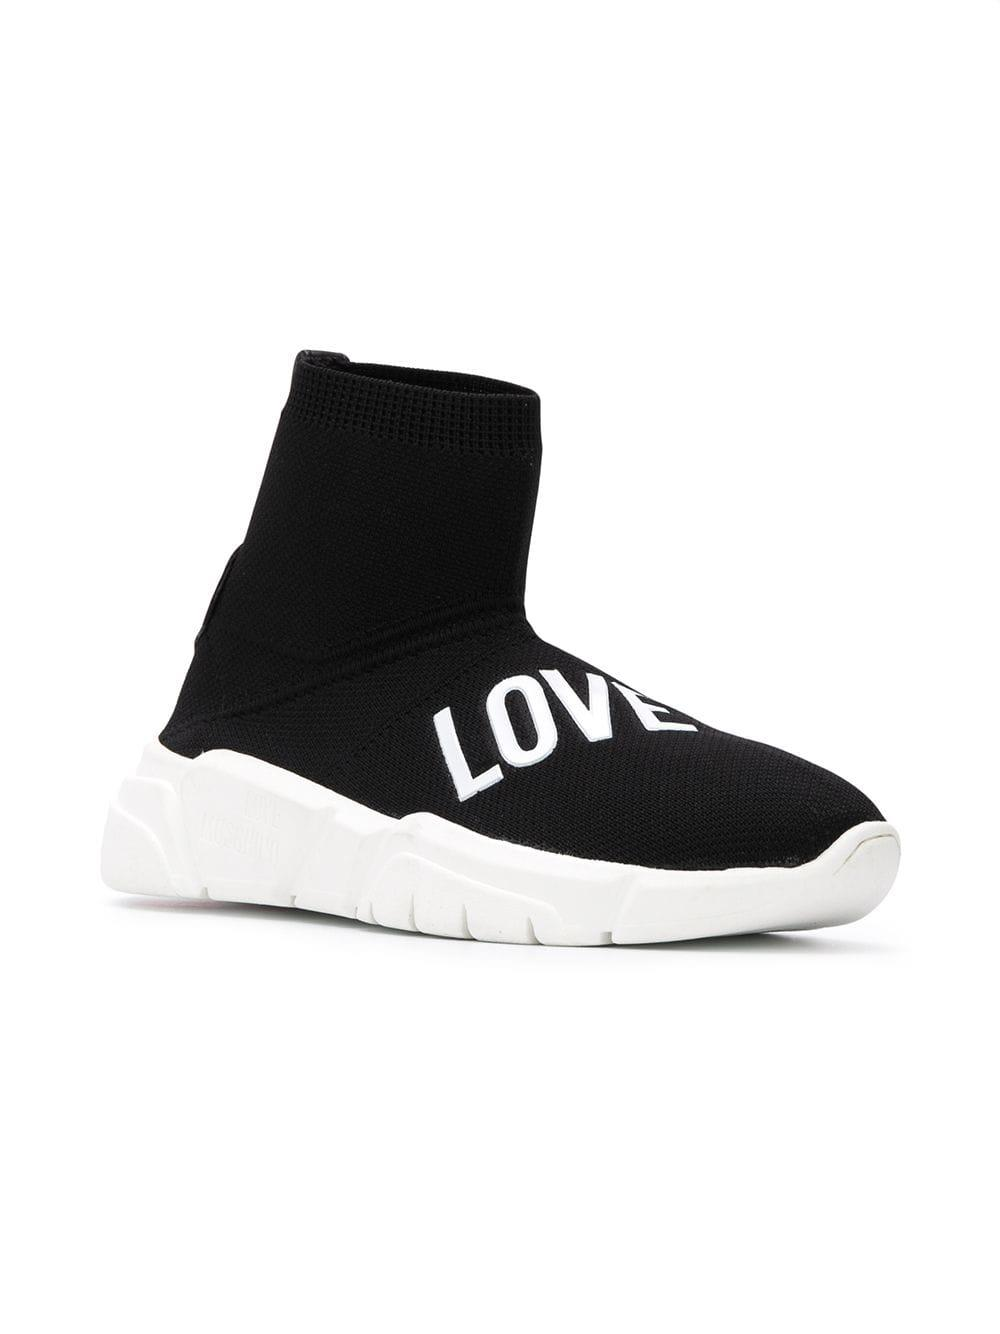 133d72cfcae Lyst - Zapatillas love con calcetines Love Moschino de color Negro